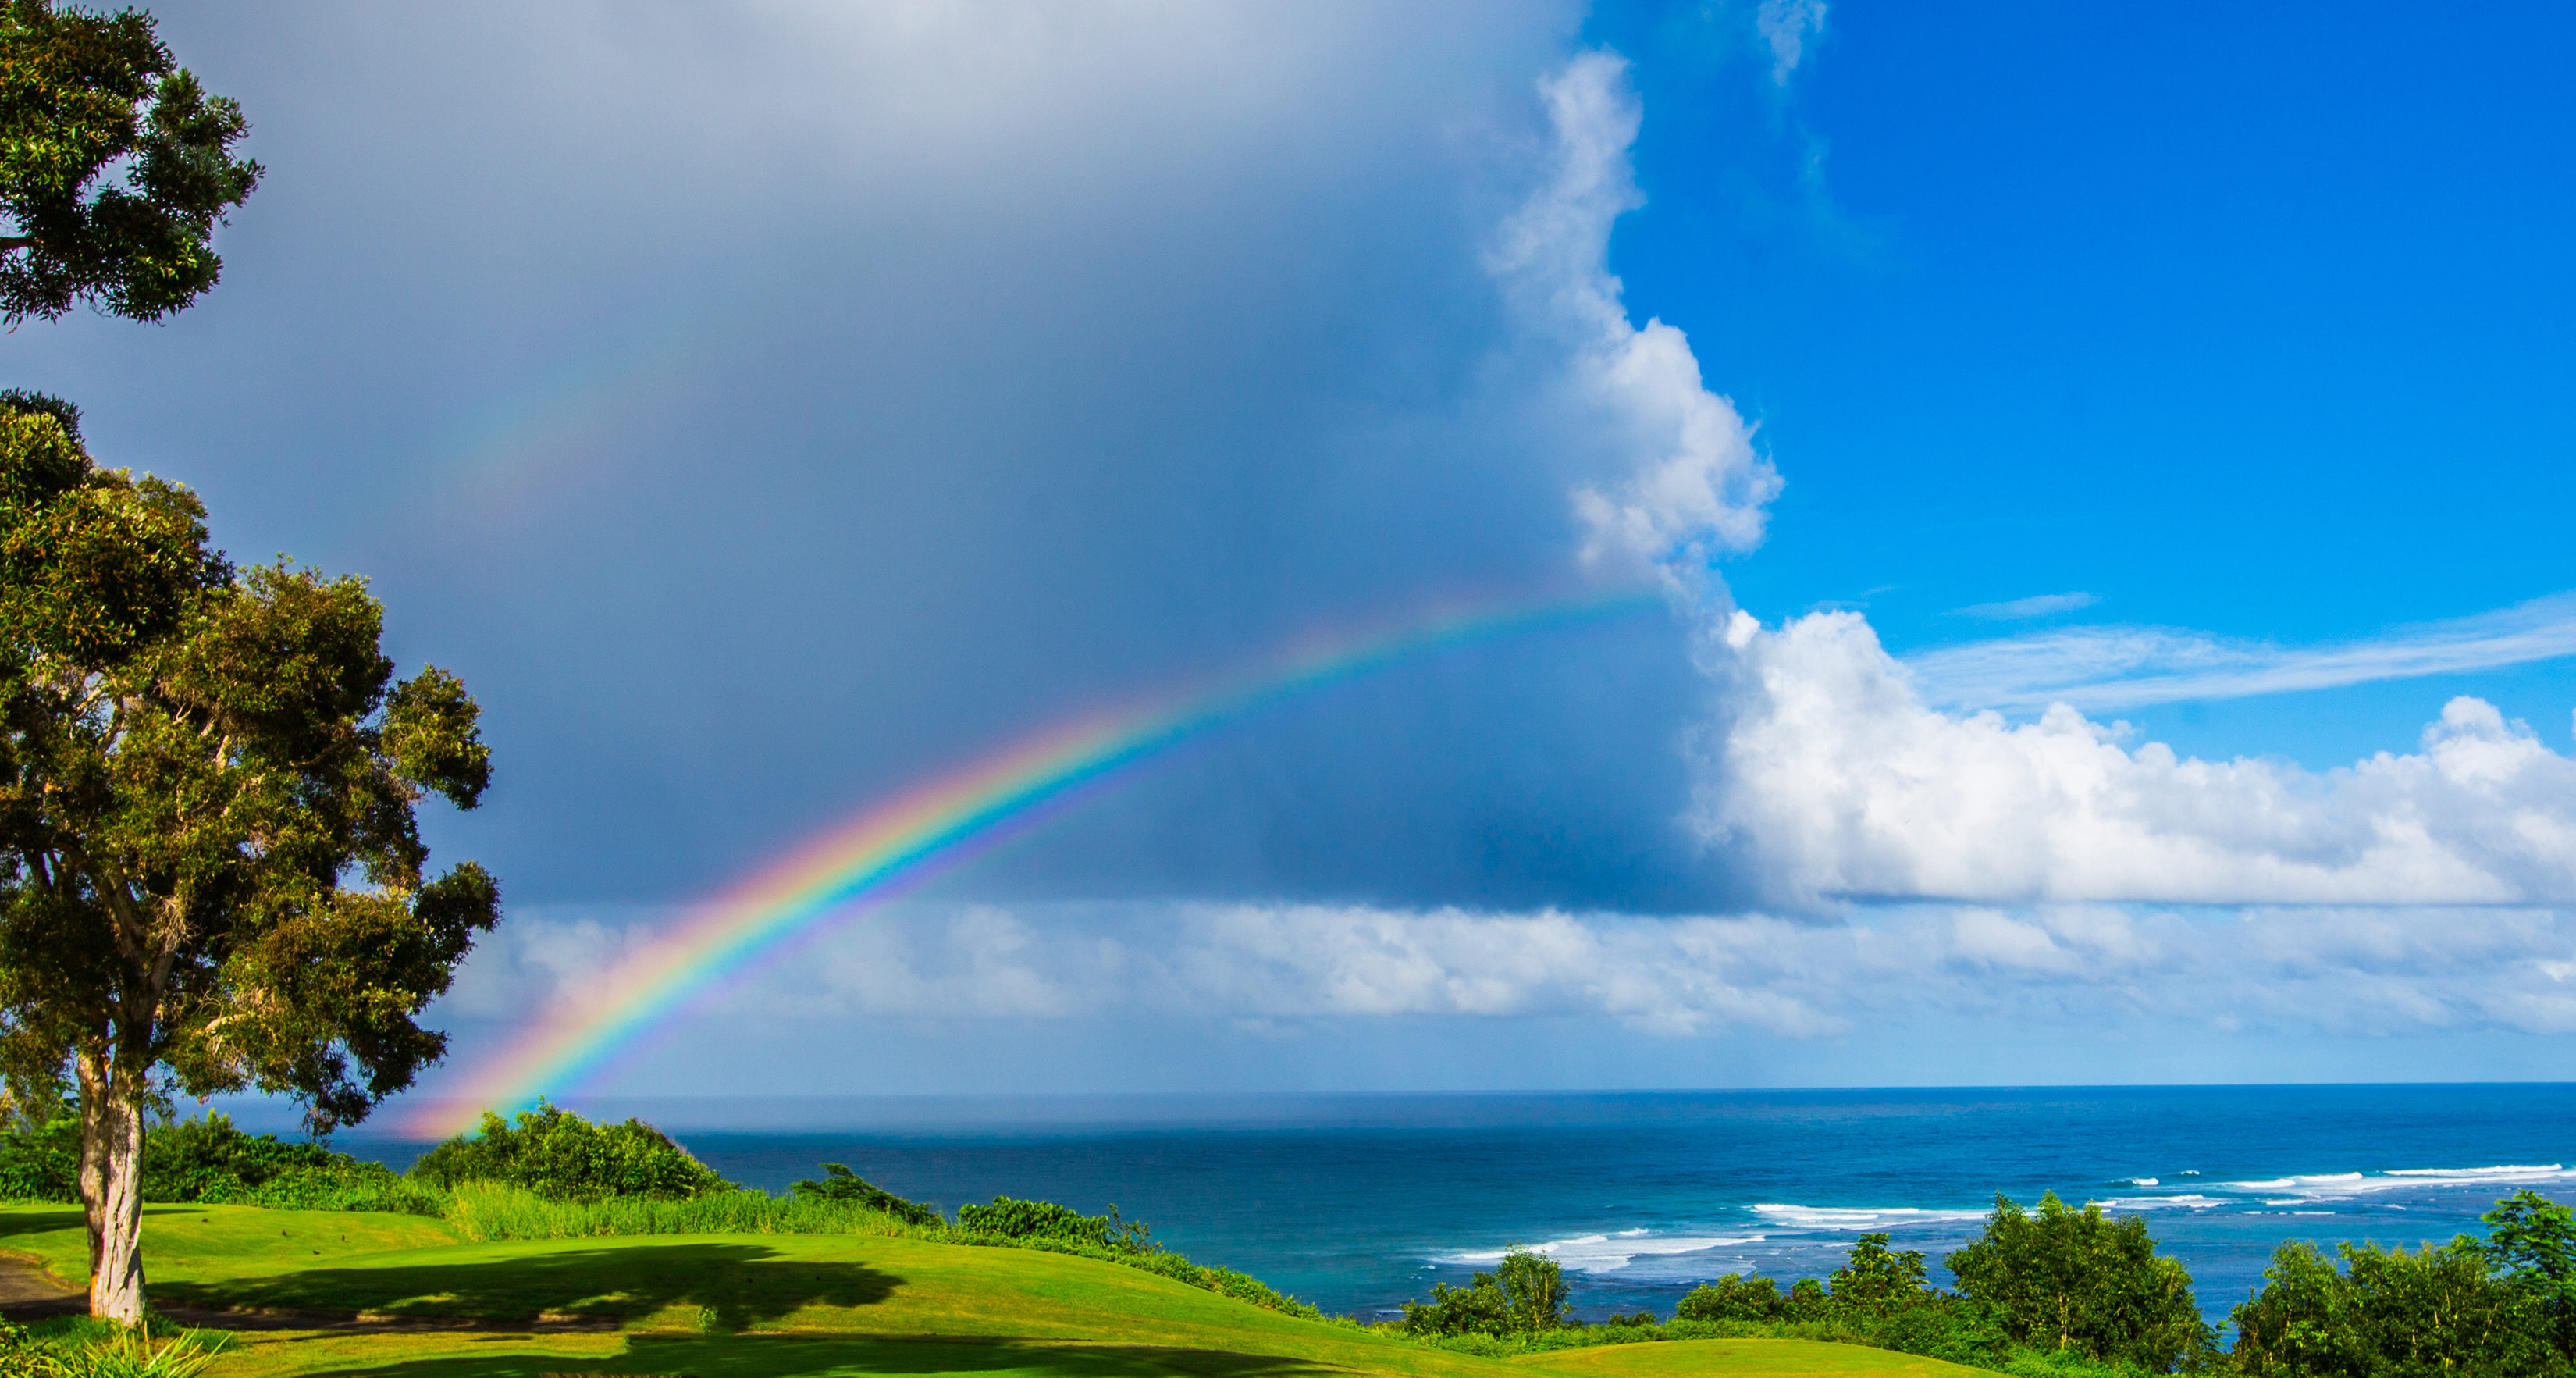 Princeville-vacations Rainbor Over Princeville Golf-3300x1765-300dpi